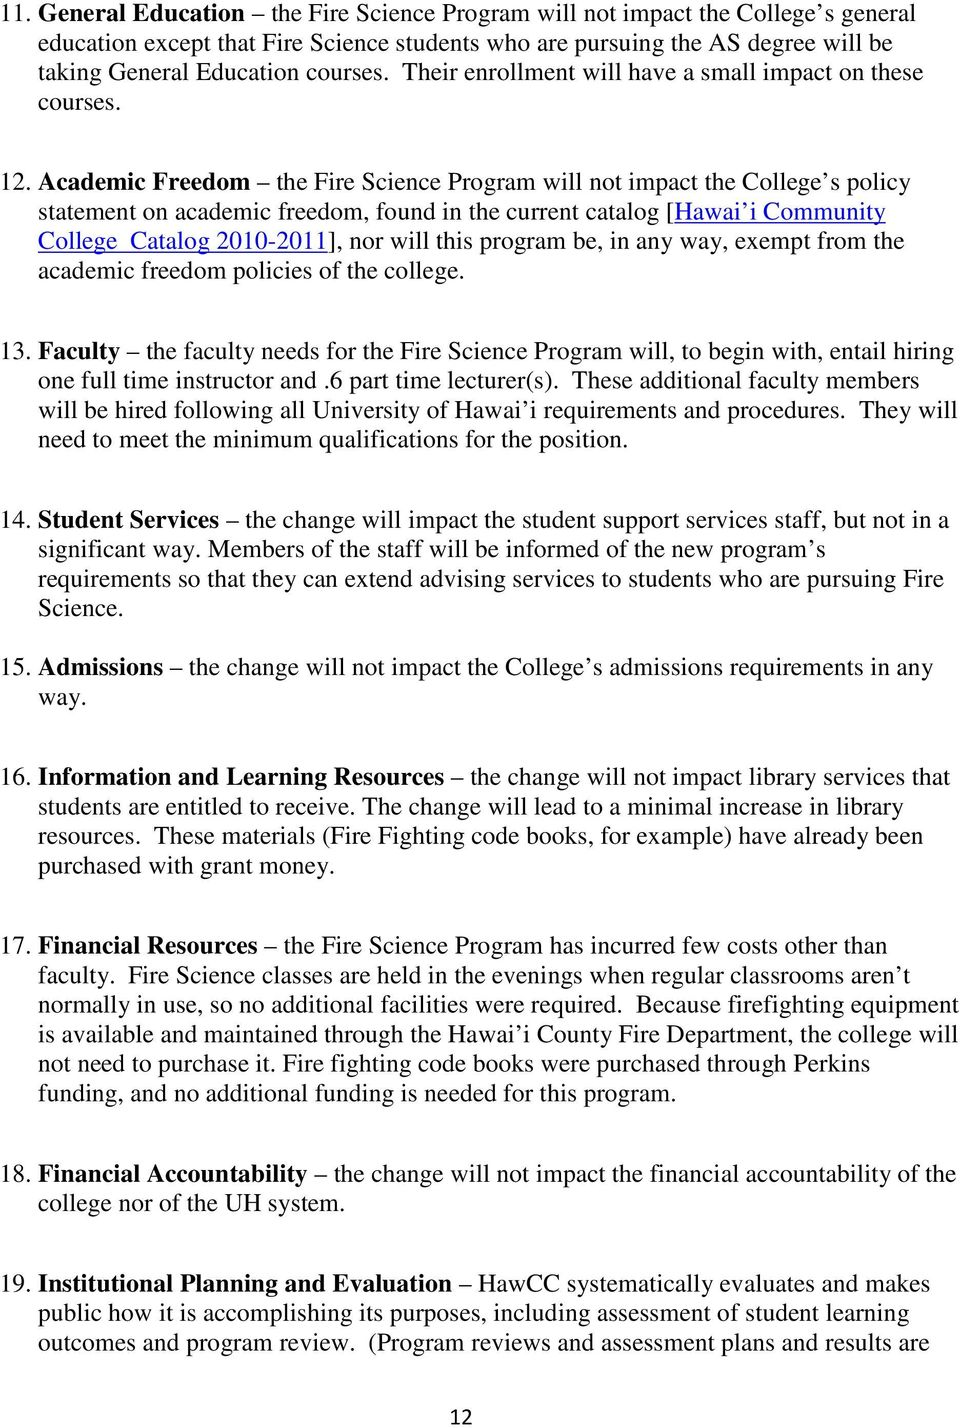 Academic Freedom the Fire Science Program will not impact the College s policy statement on academic freedom, found in the current catalog [Hawai i Community College Catalog 2010-2011], nor will this